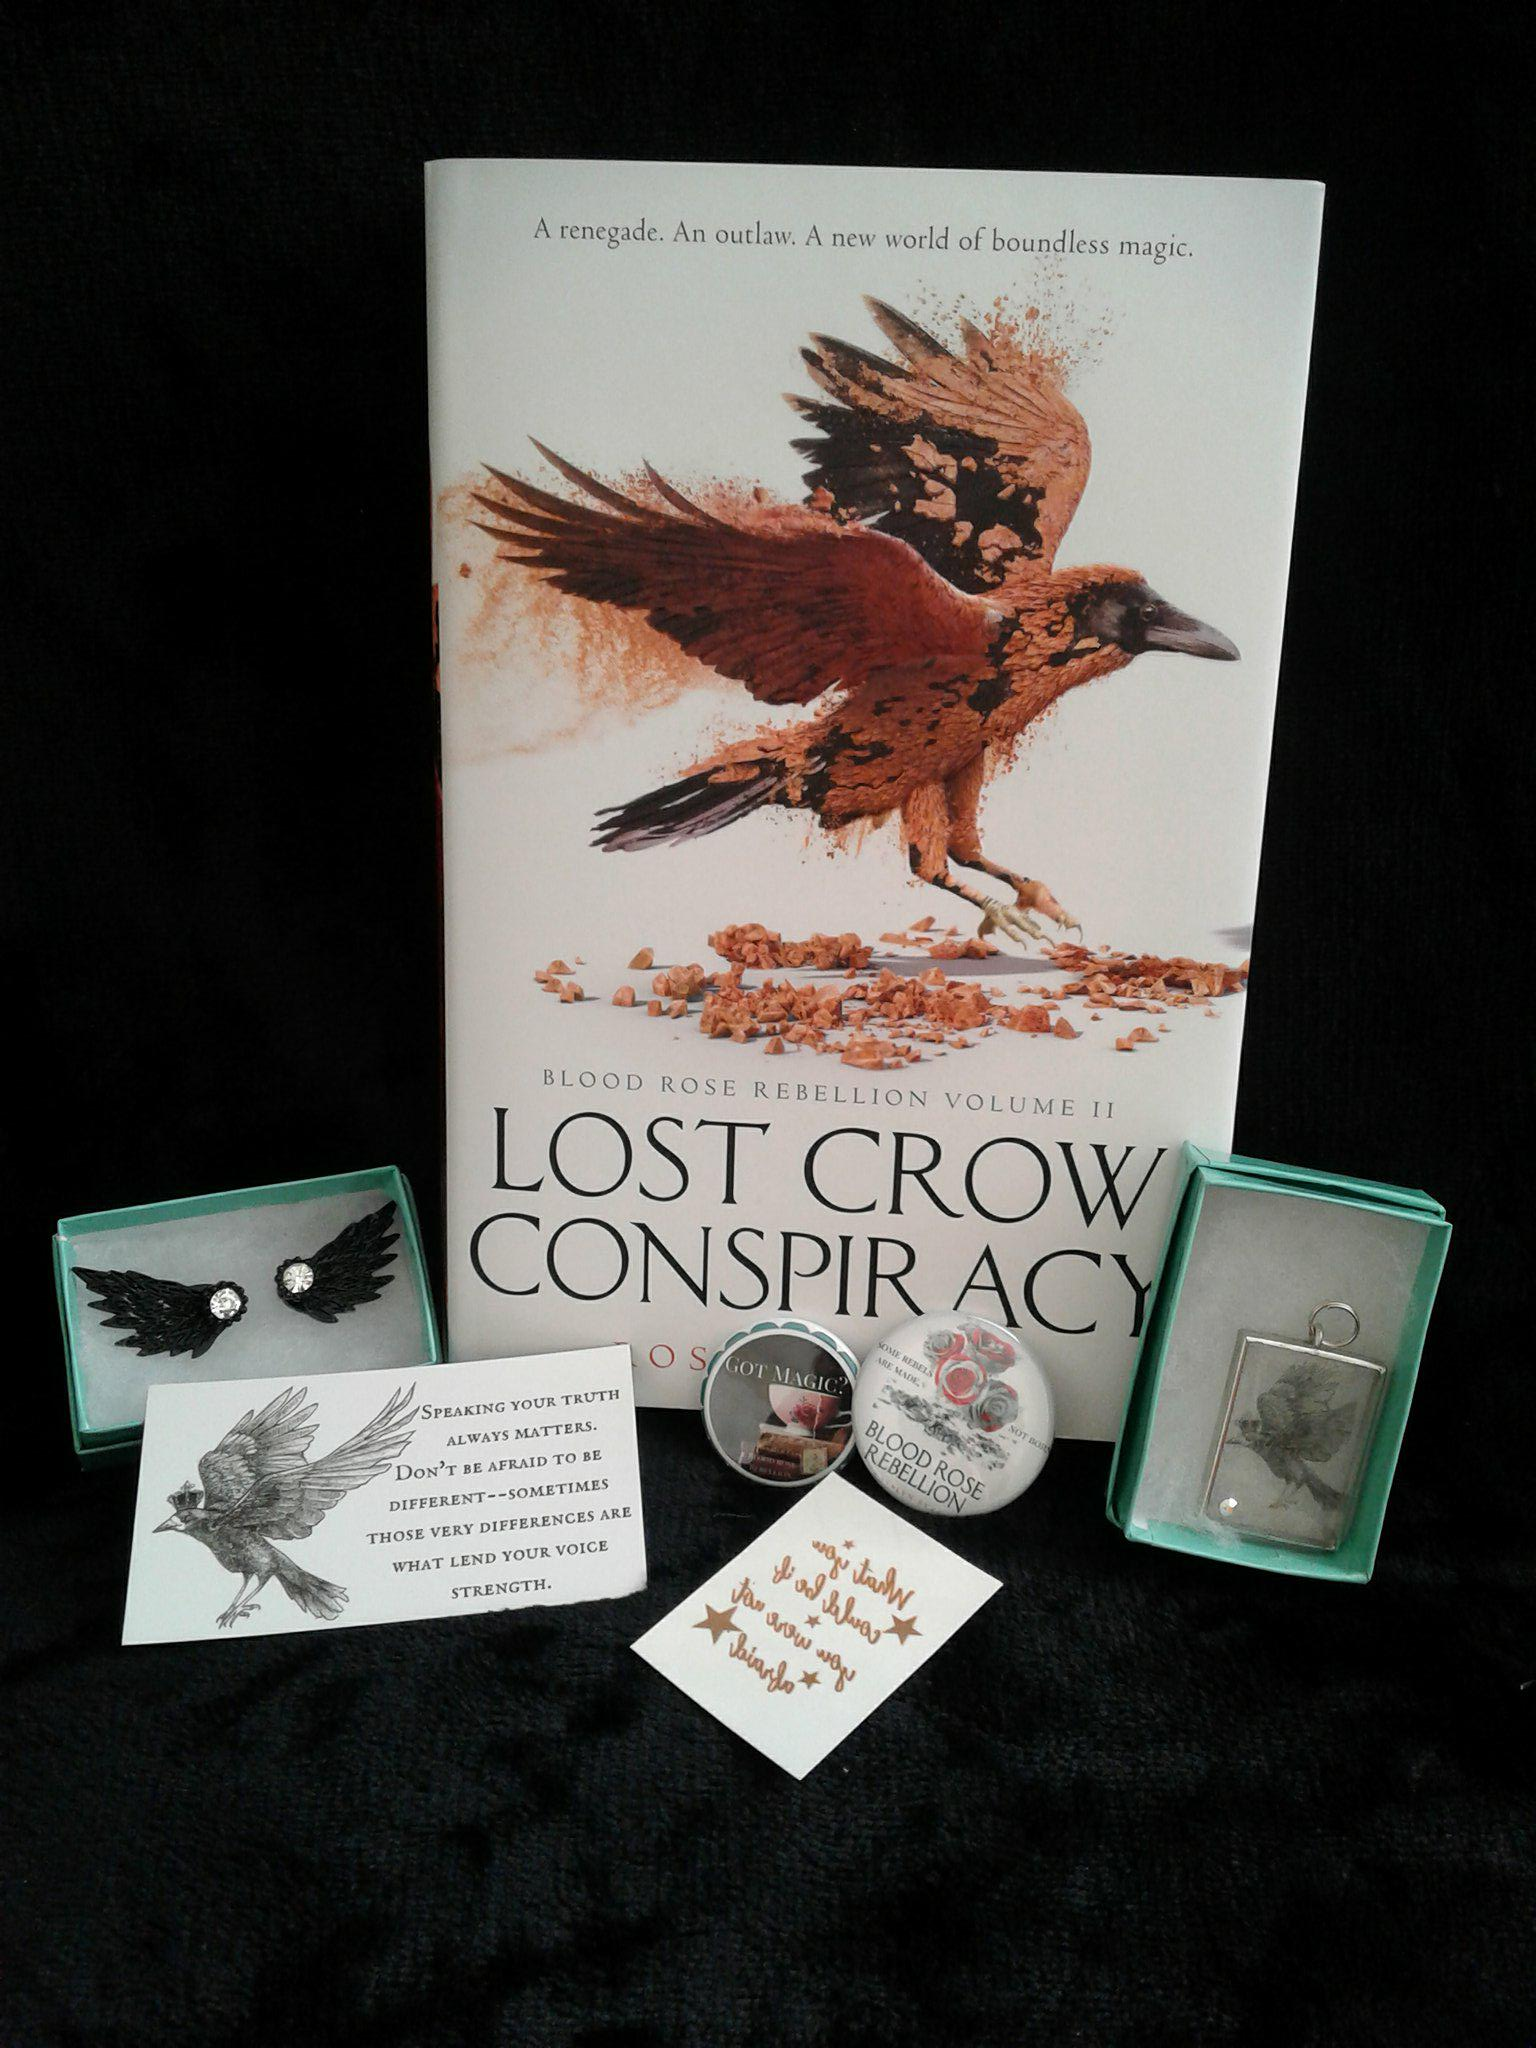 While Youre Here You Can Also Enter A Giveaway For My Brand New Release LOST CROW CONSPIRACY And Some Swag Crow Earrings Necklace